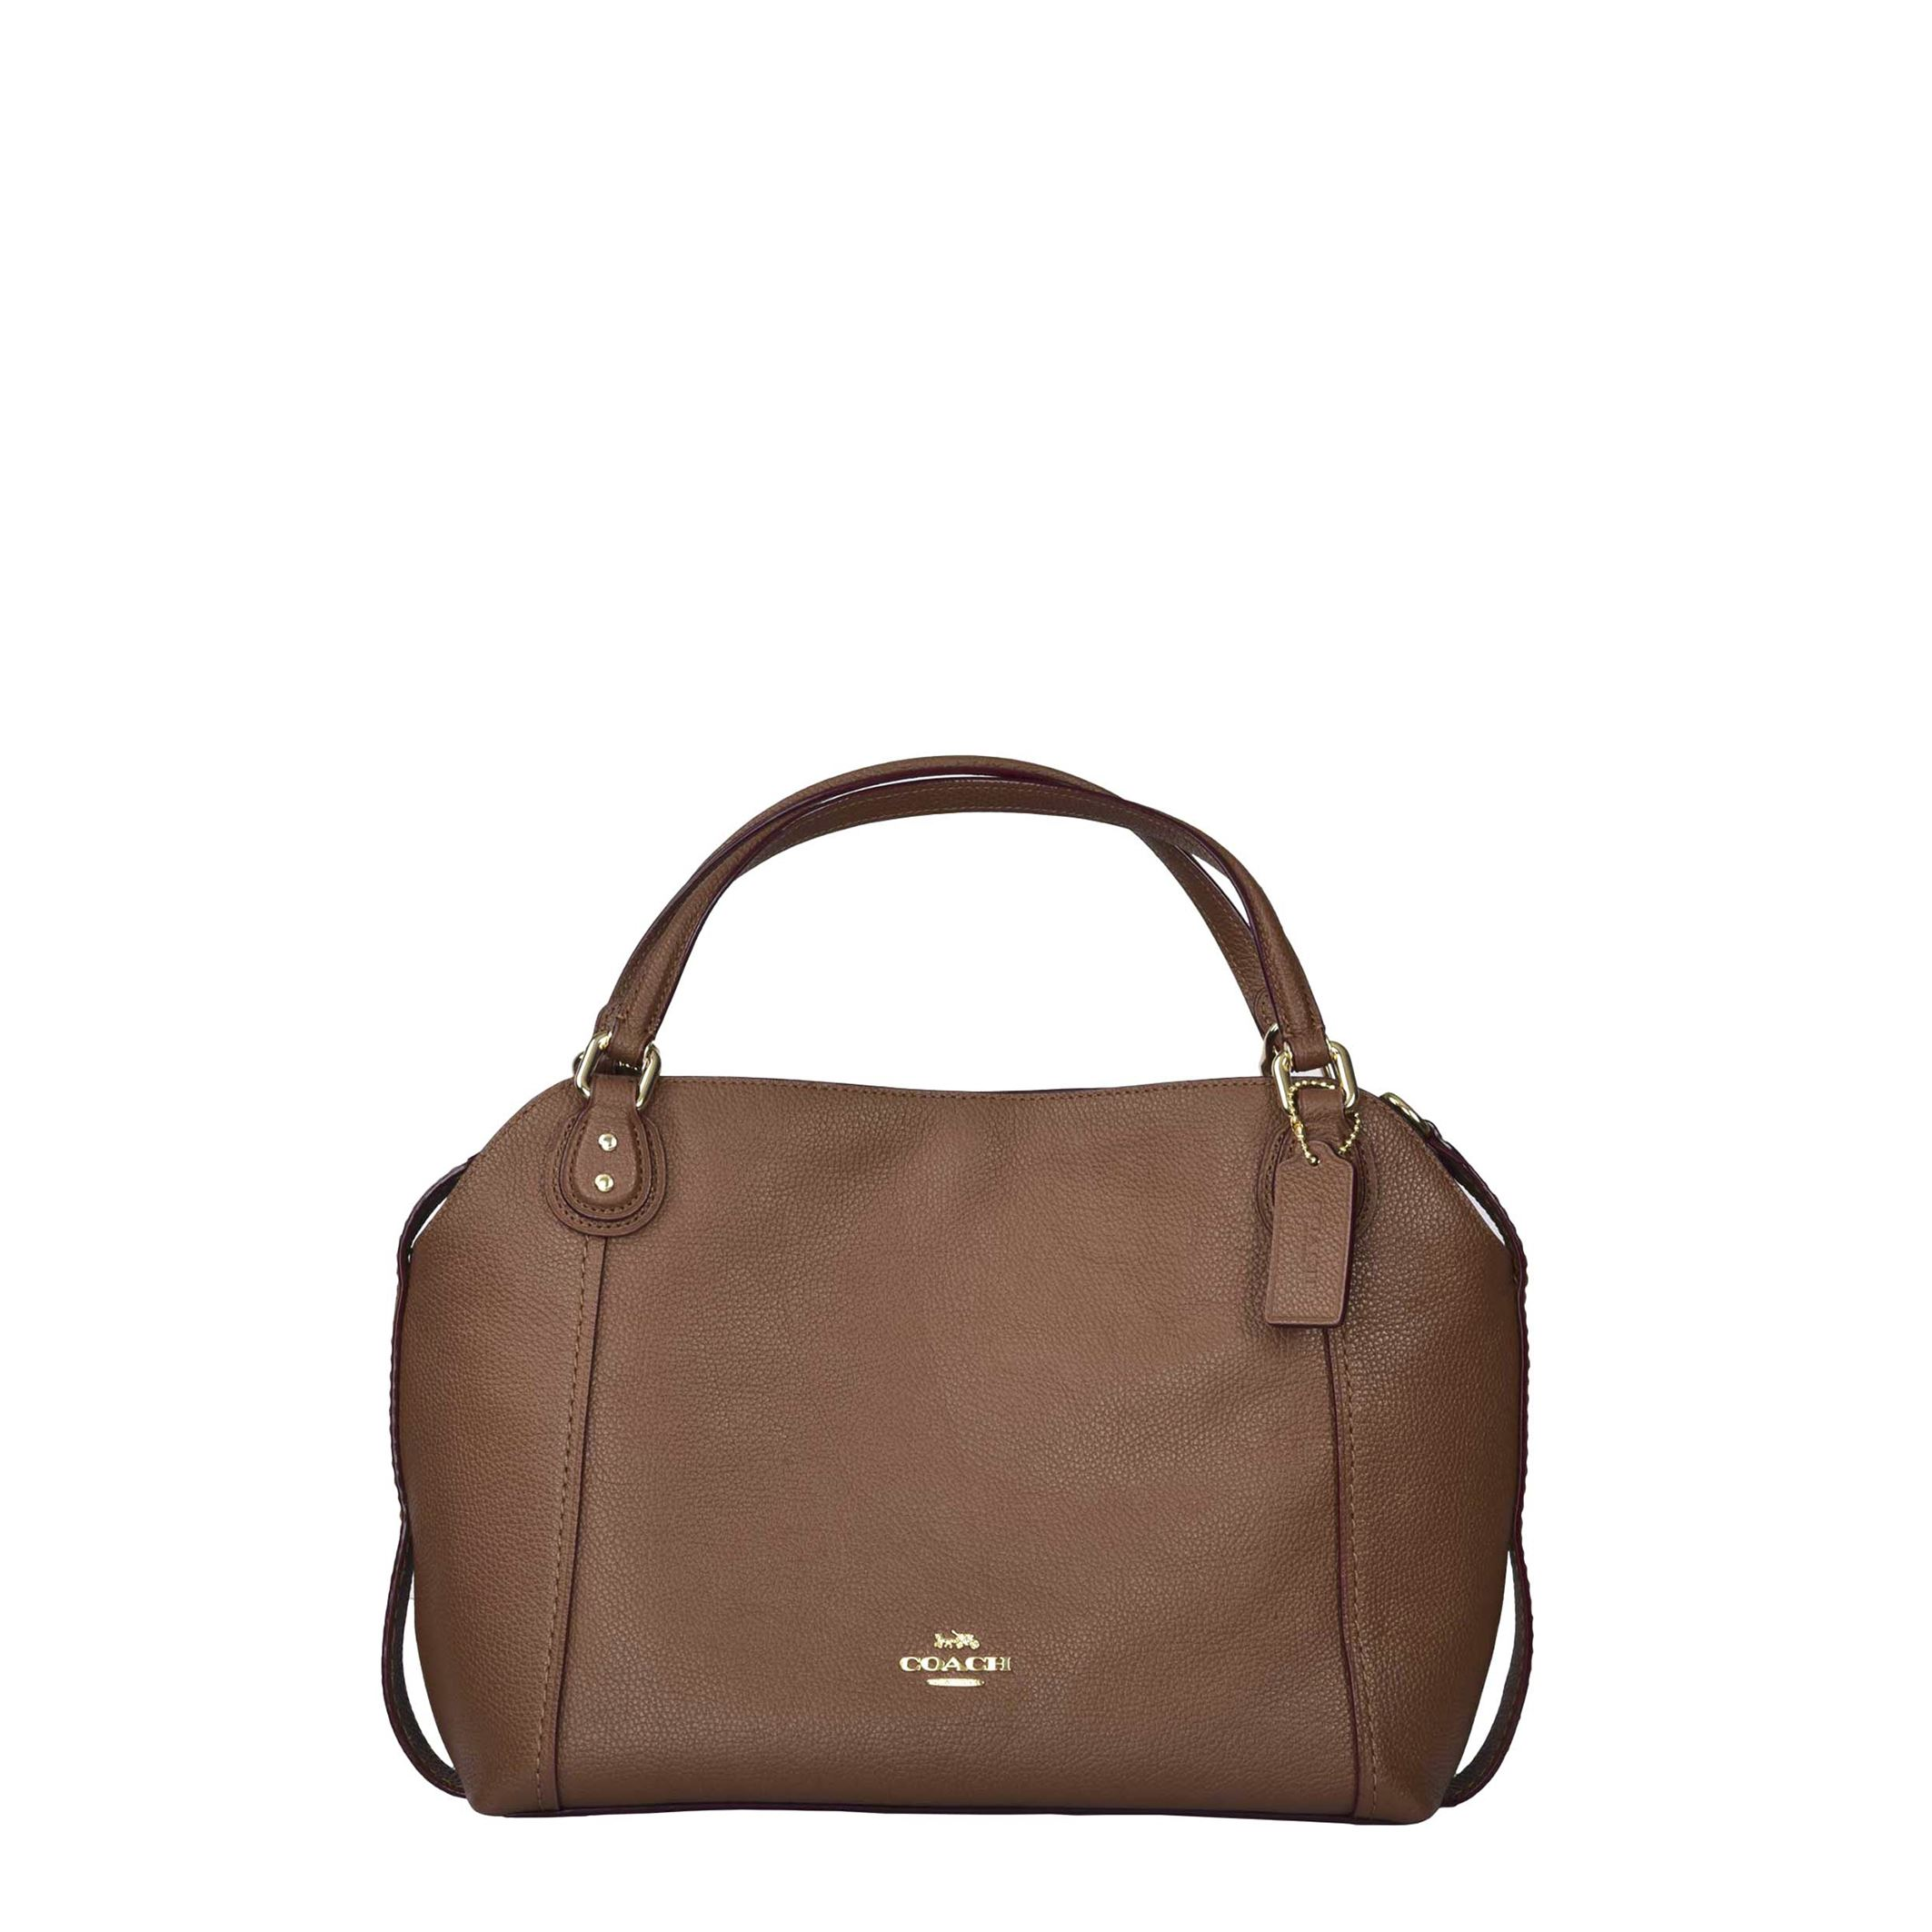 12a922e4611b Details about Coach Women s Brown Handbag Metallic Fastening Removable Strap